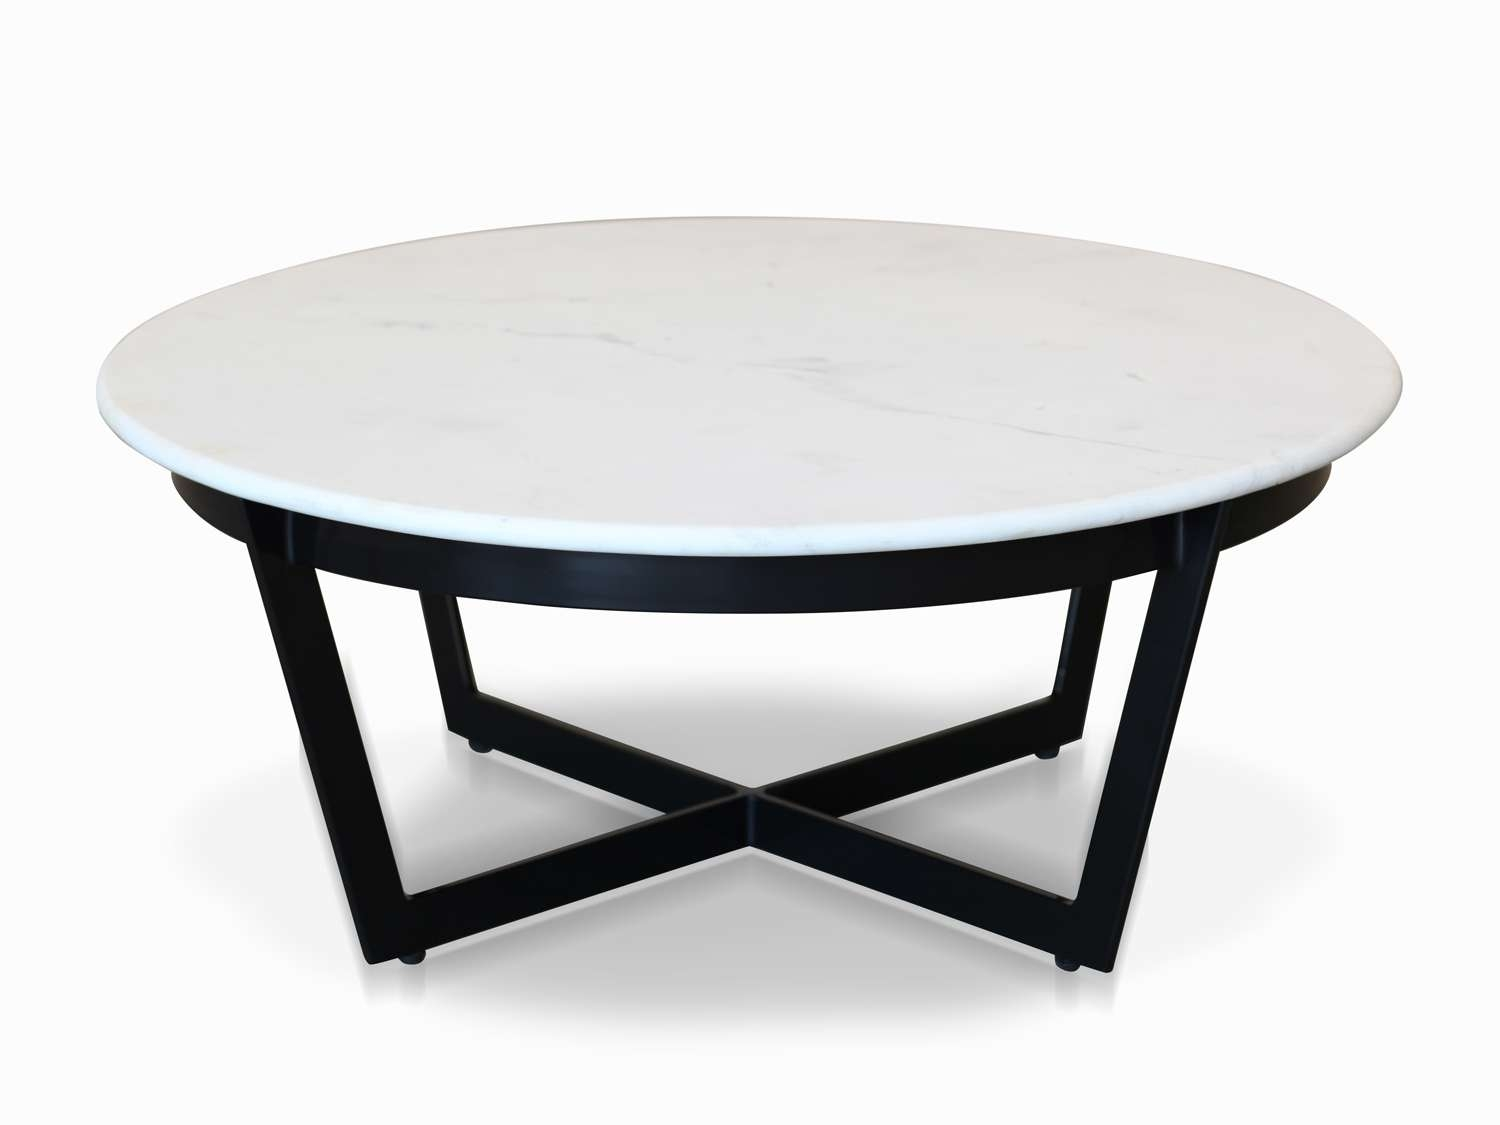 Fashionable Marble Round Coffee Tables In Round Marble Coffee Table (View 5 of 20)